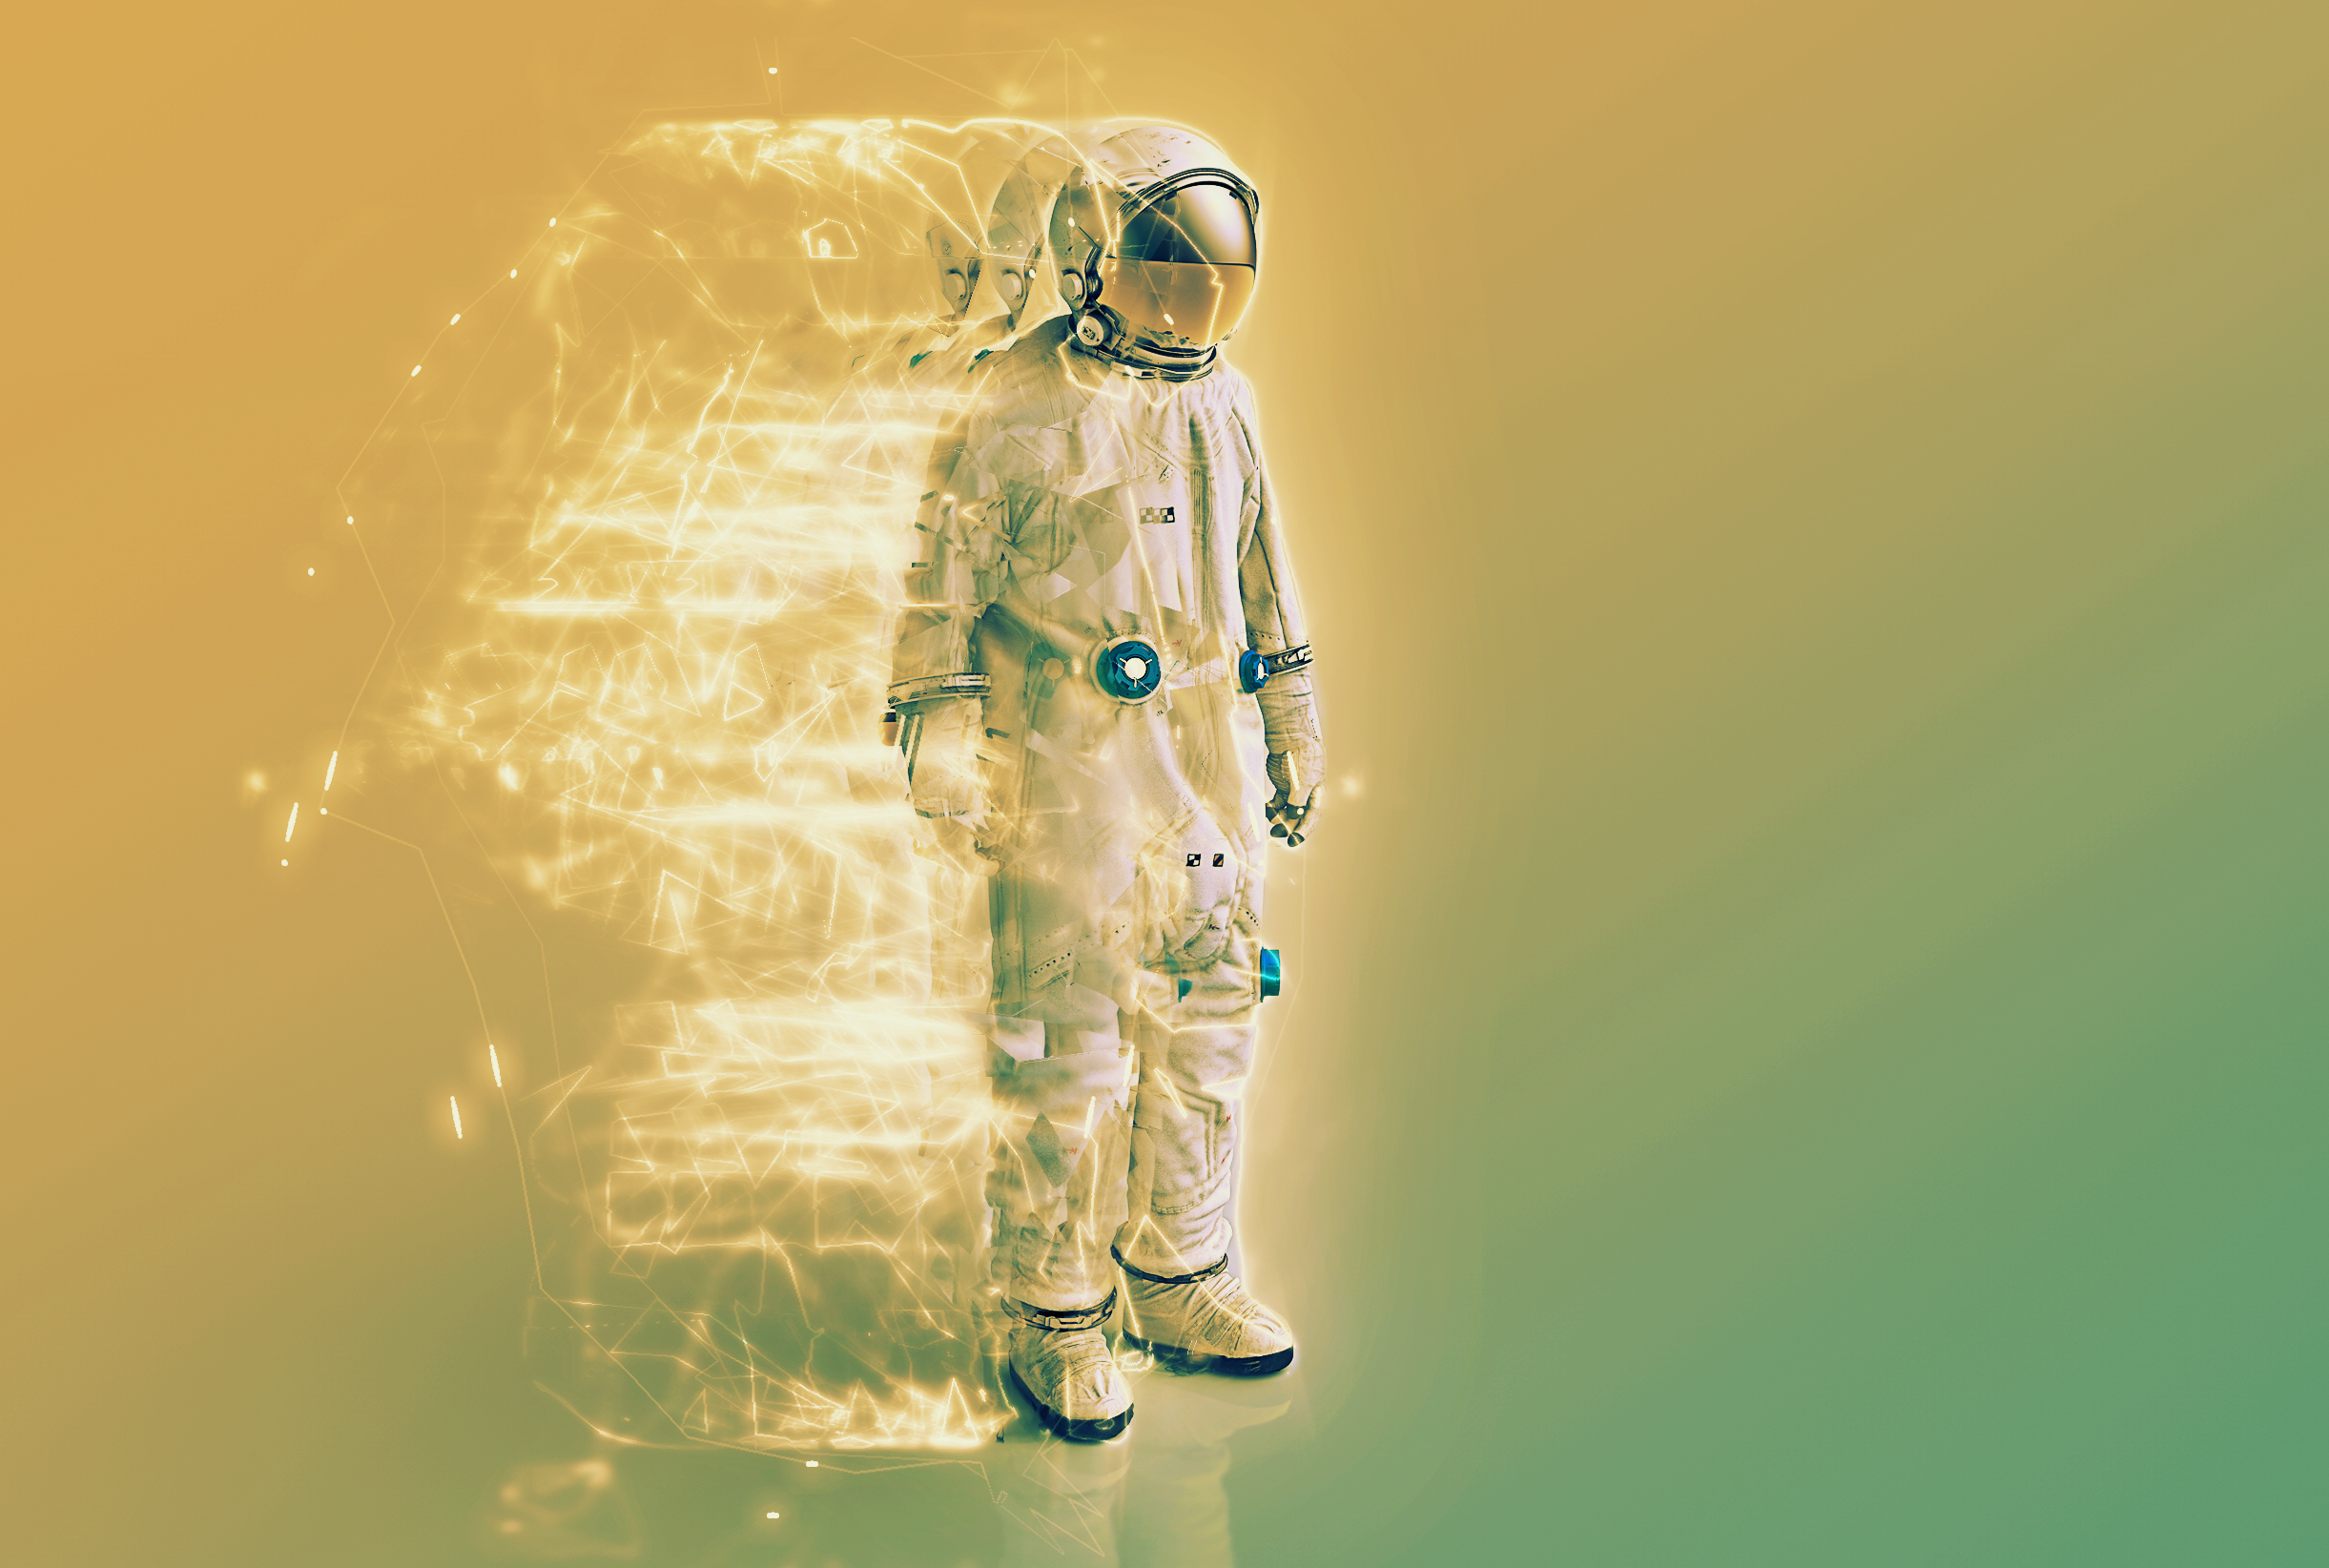 Astronaut_a